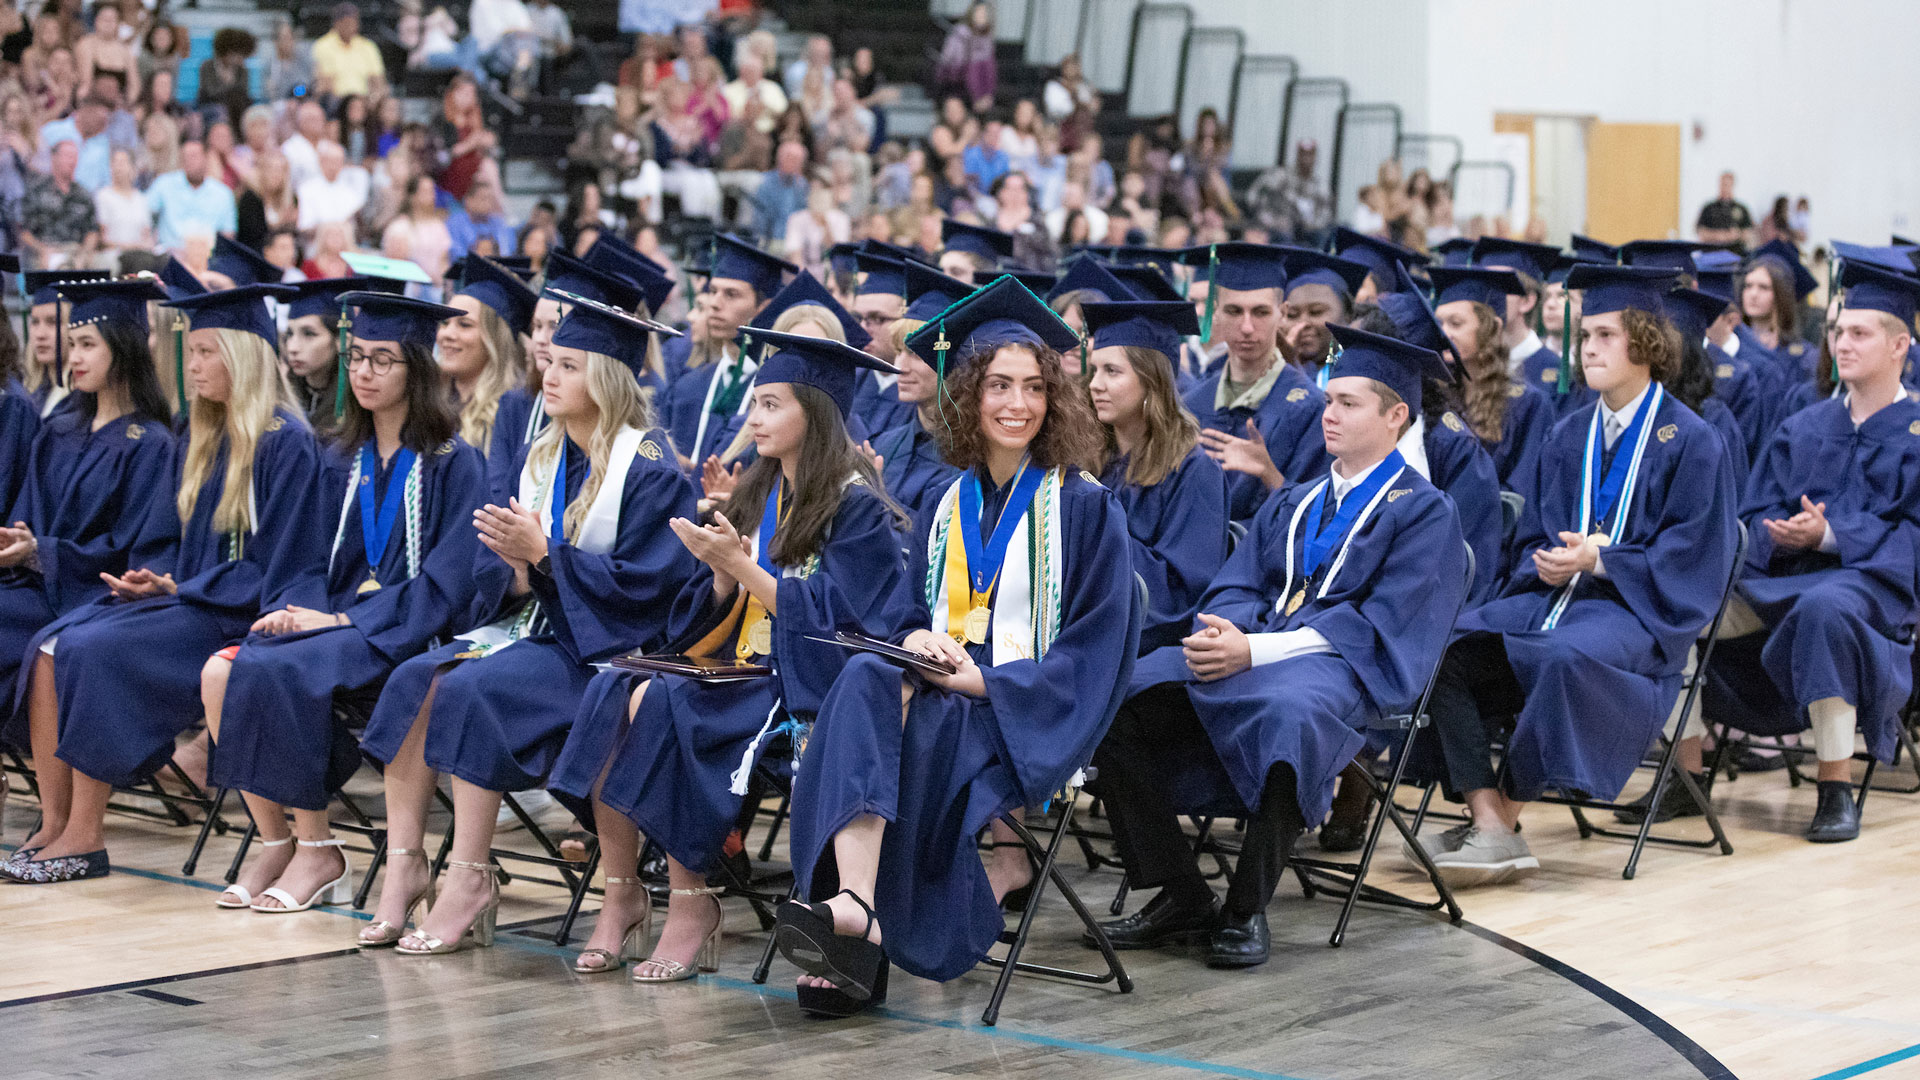 Students participate in the 2019 Clark Advanced Learning Center Graduation held Saturday, May 25.